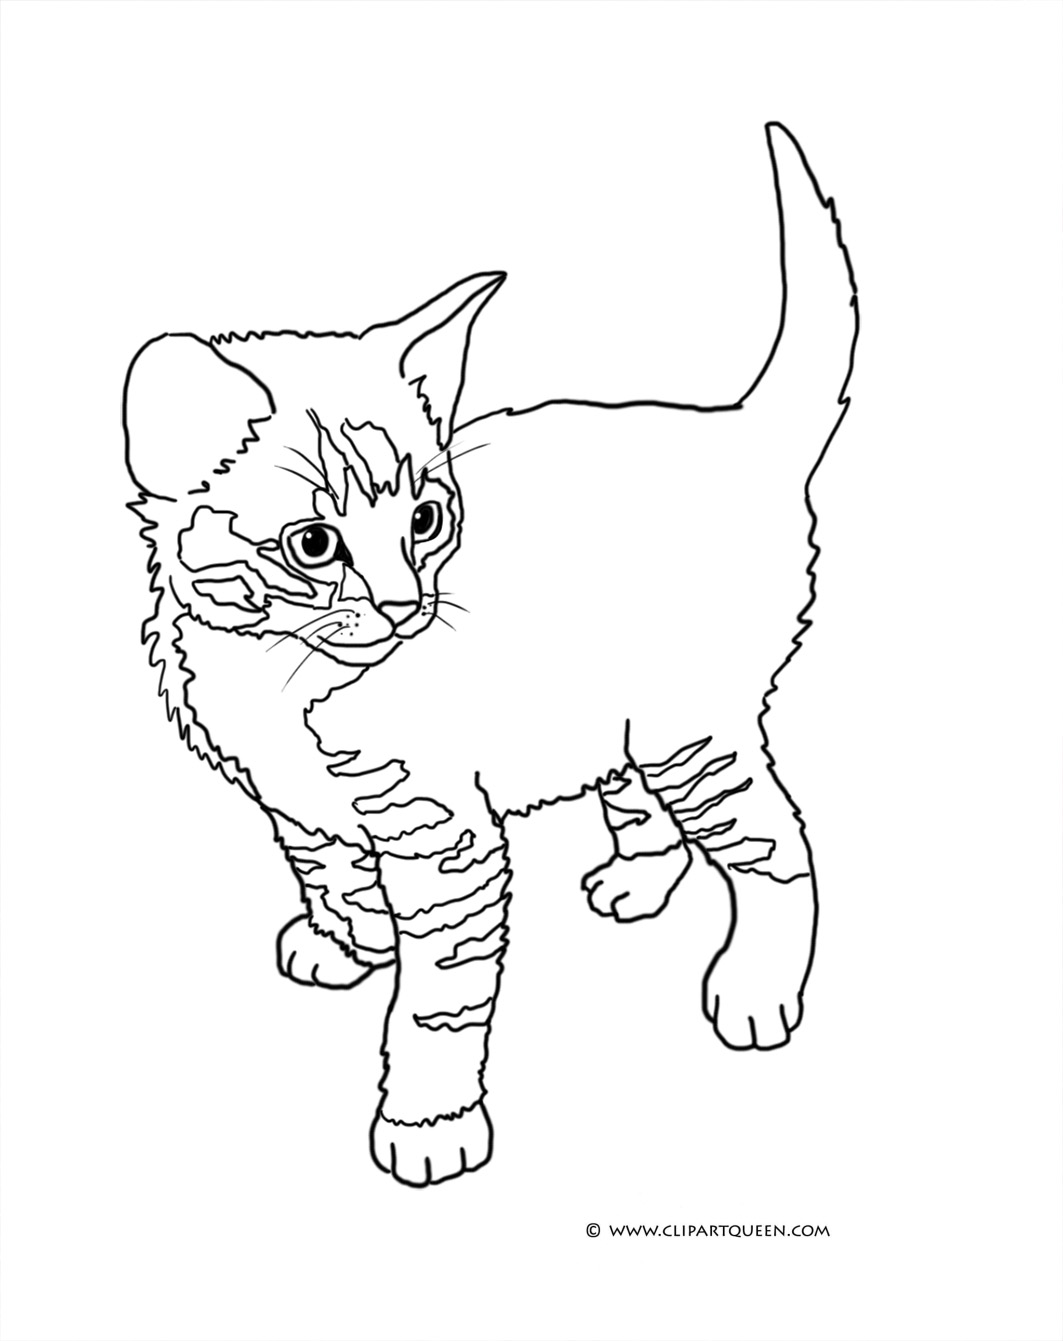 Coloring Pages : Tabby Kitten Standing Coloring Pages Cat ...